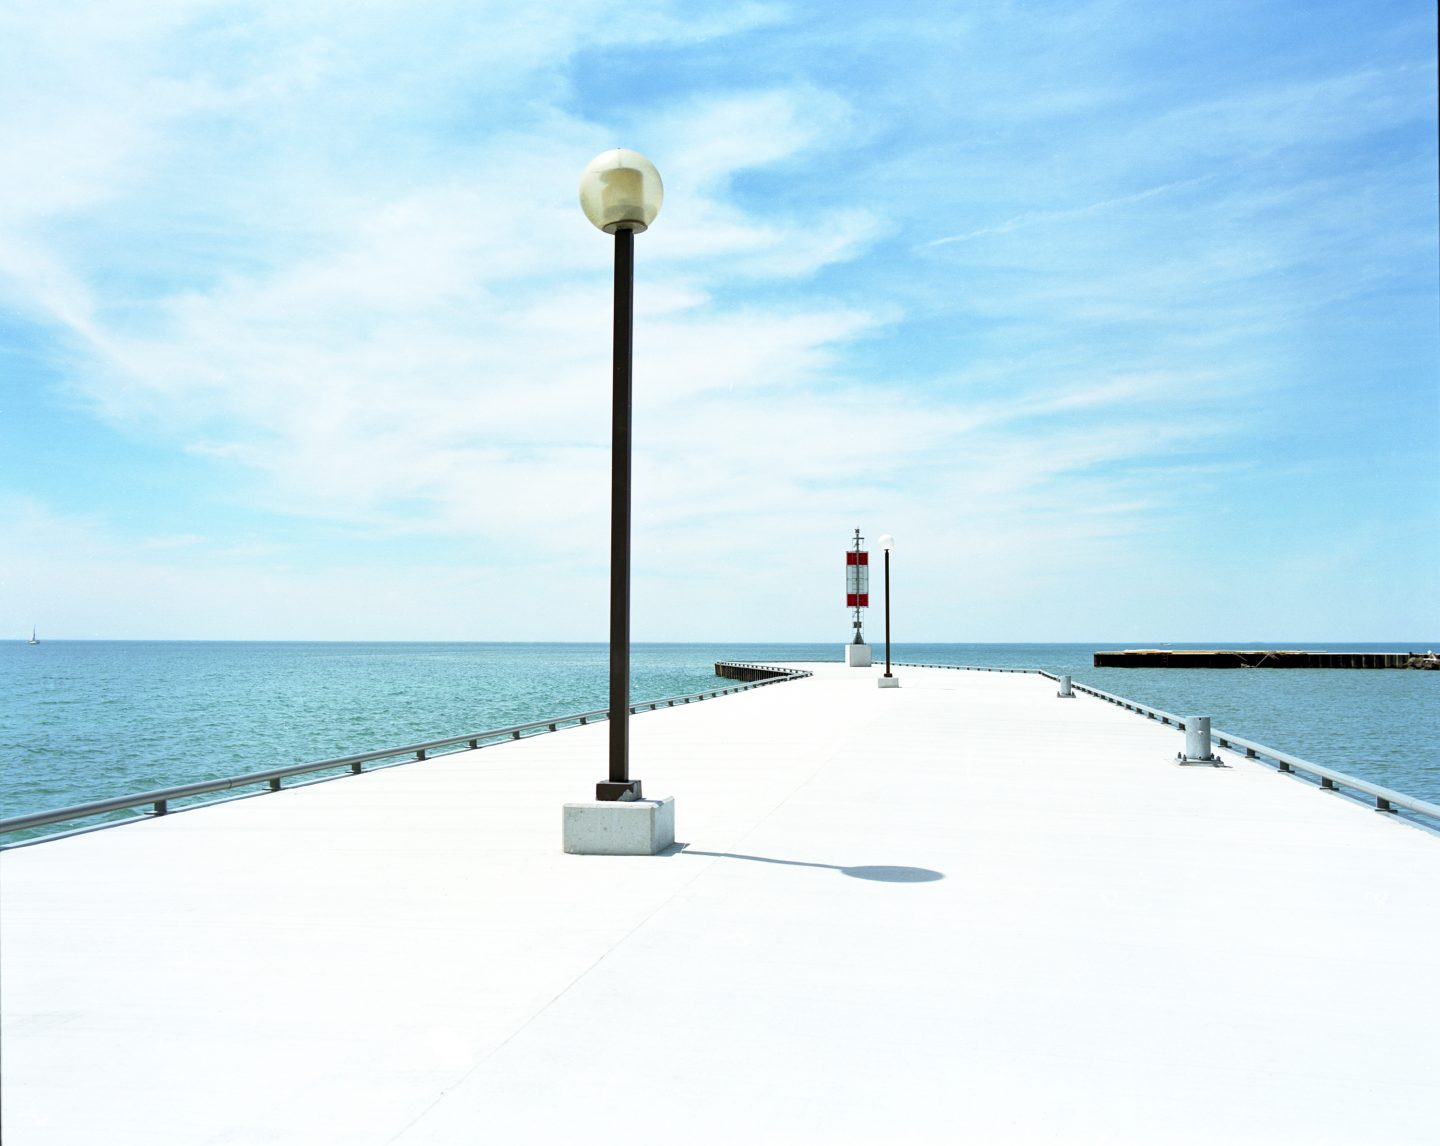 Goderich with the Mamiya RZ67 Pro Camera